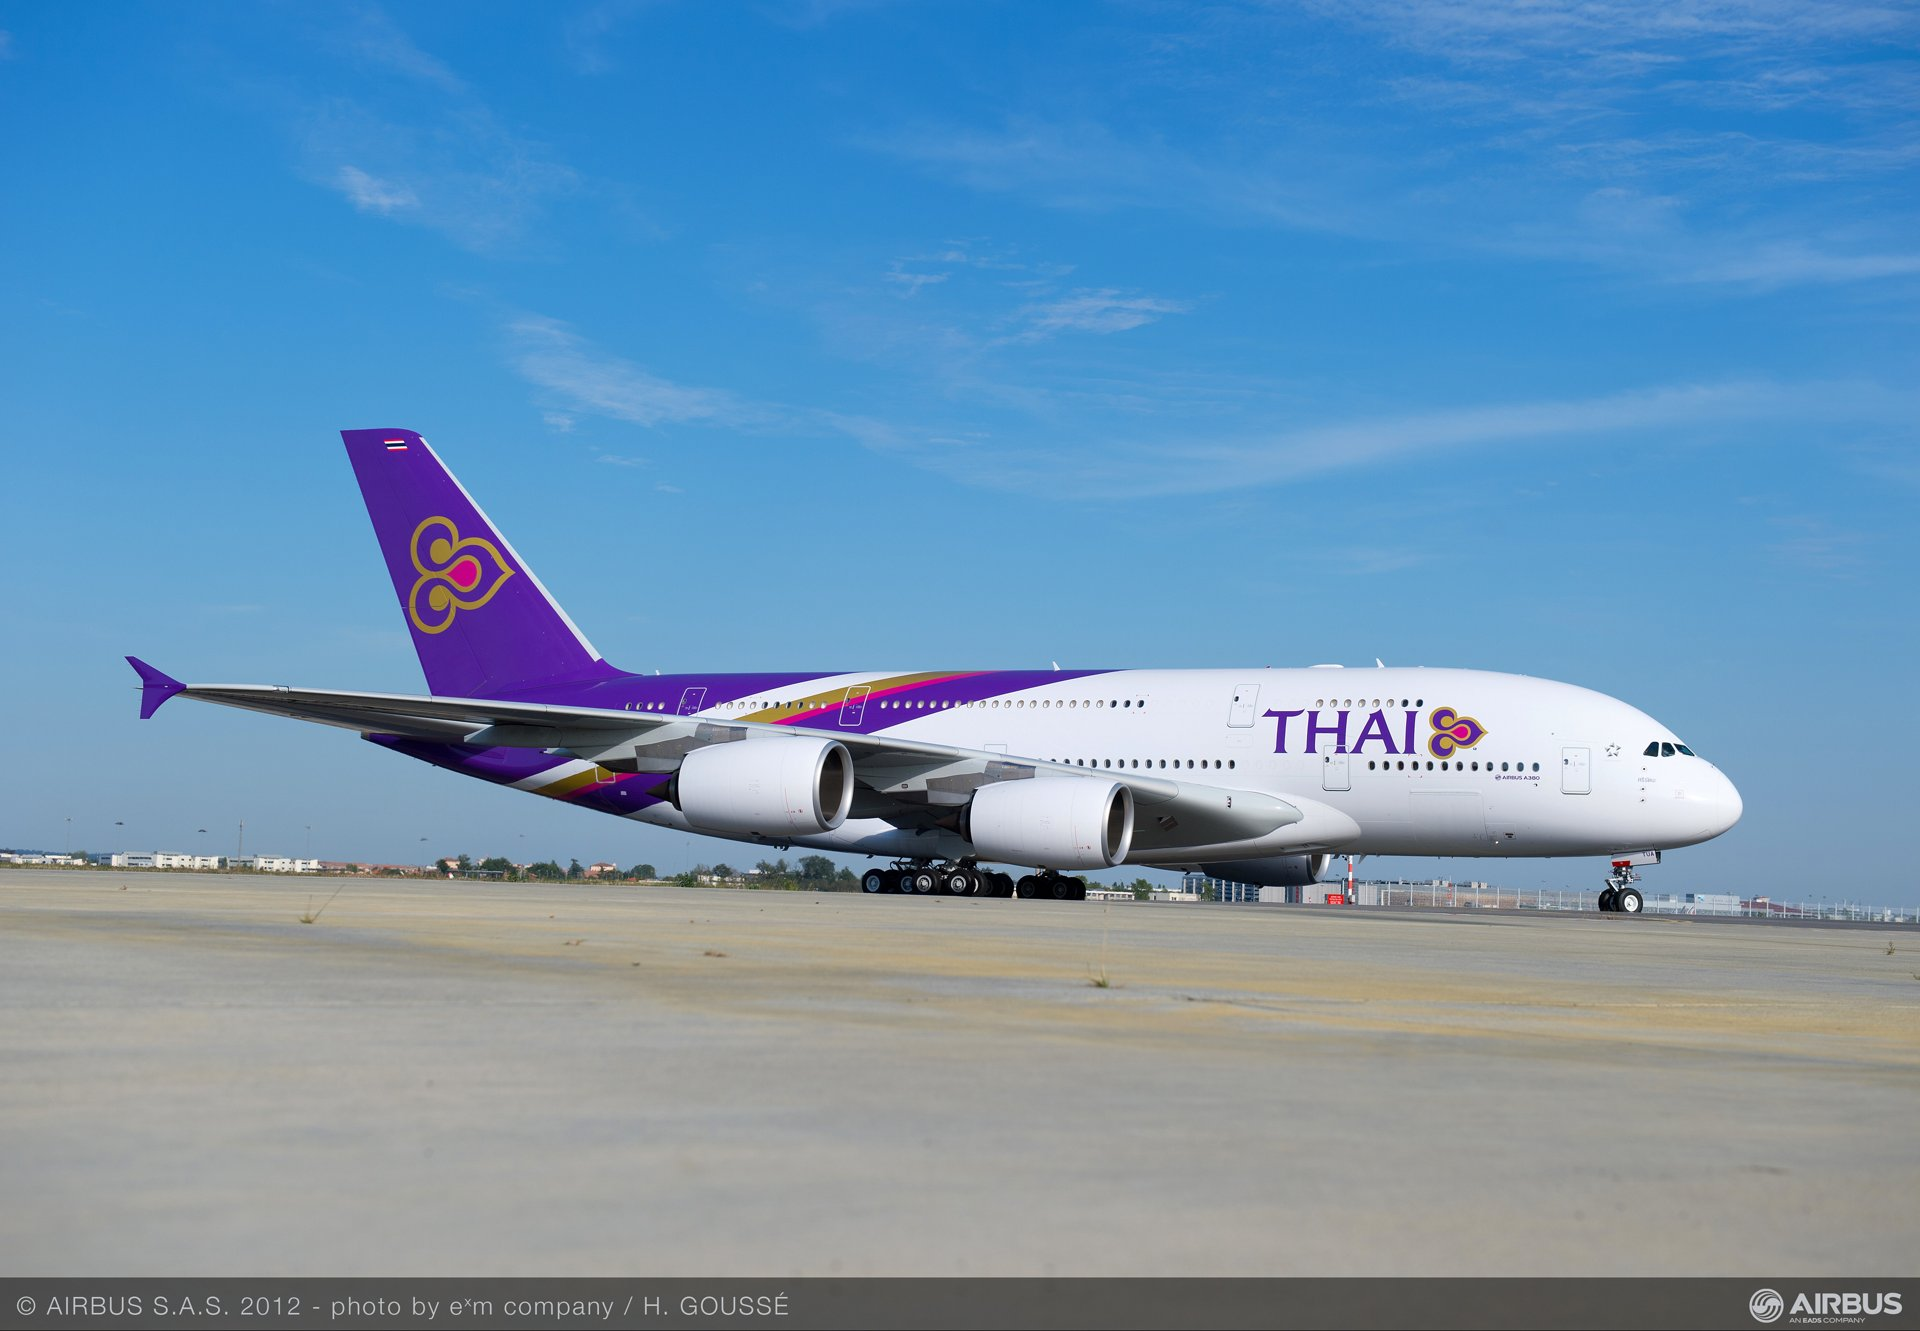 THAI first A380 is shown at Toulouse, Blagnac Airport in France, which is home to the jetliner's final assembly line.